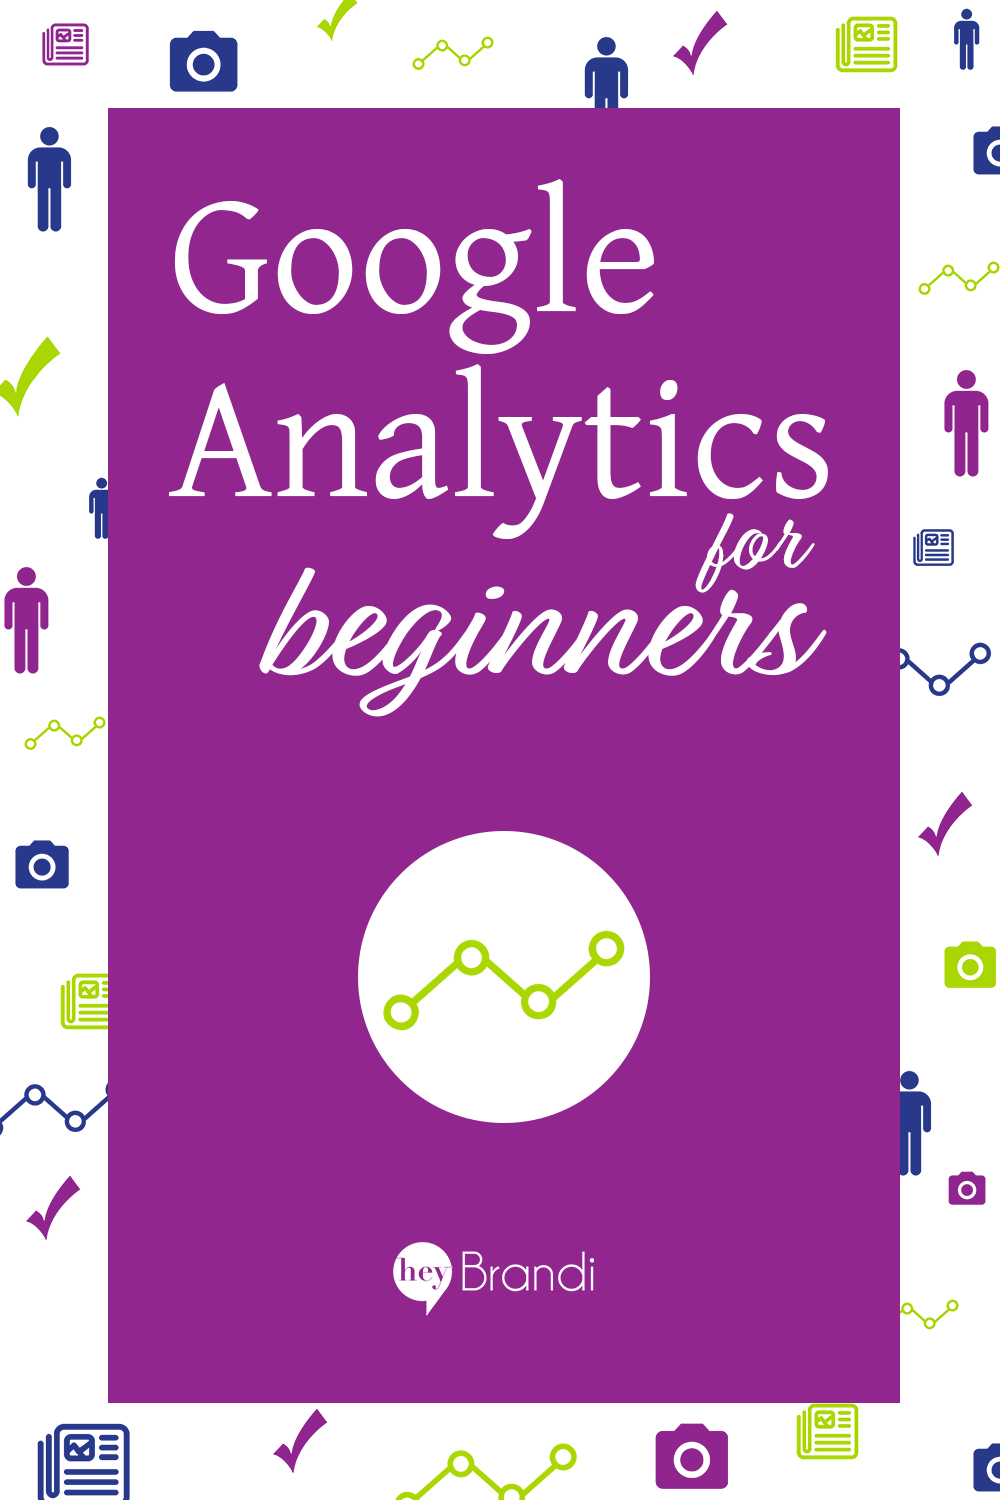 Google Analytics is a key tool tool to understand how people are using your website. Learn the basics of setting up Google Analytics in this blog post from HeyBrandi.com